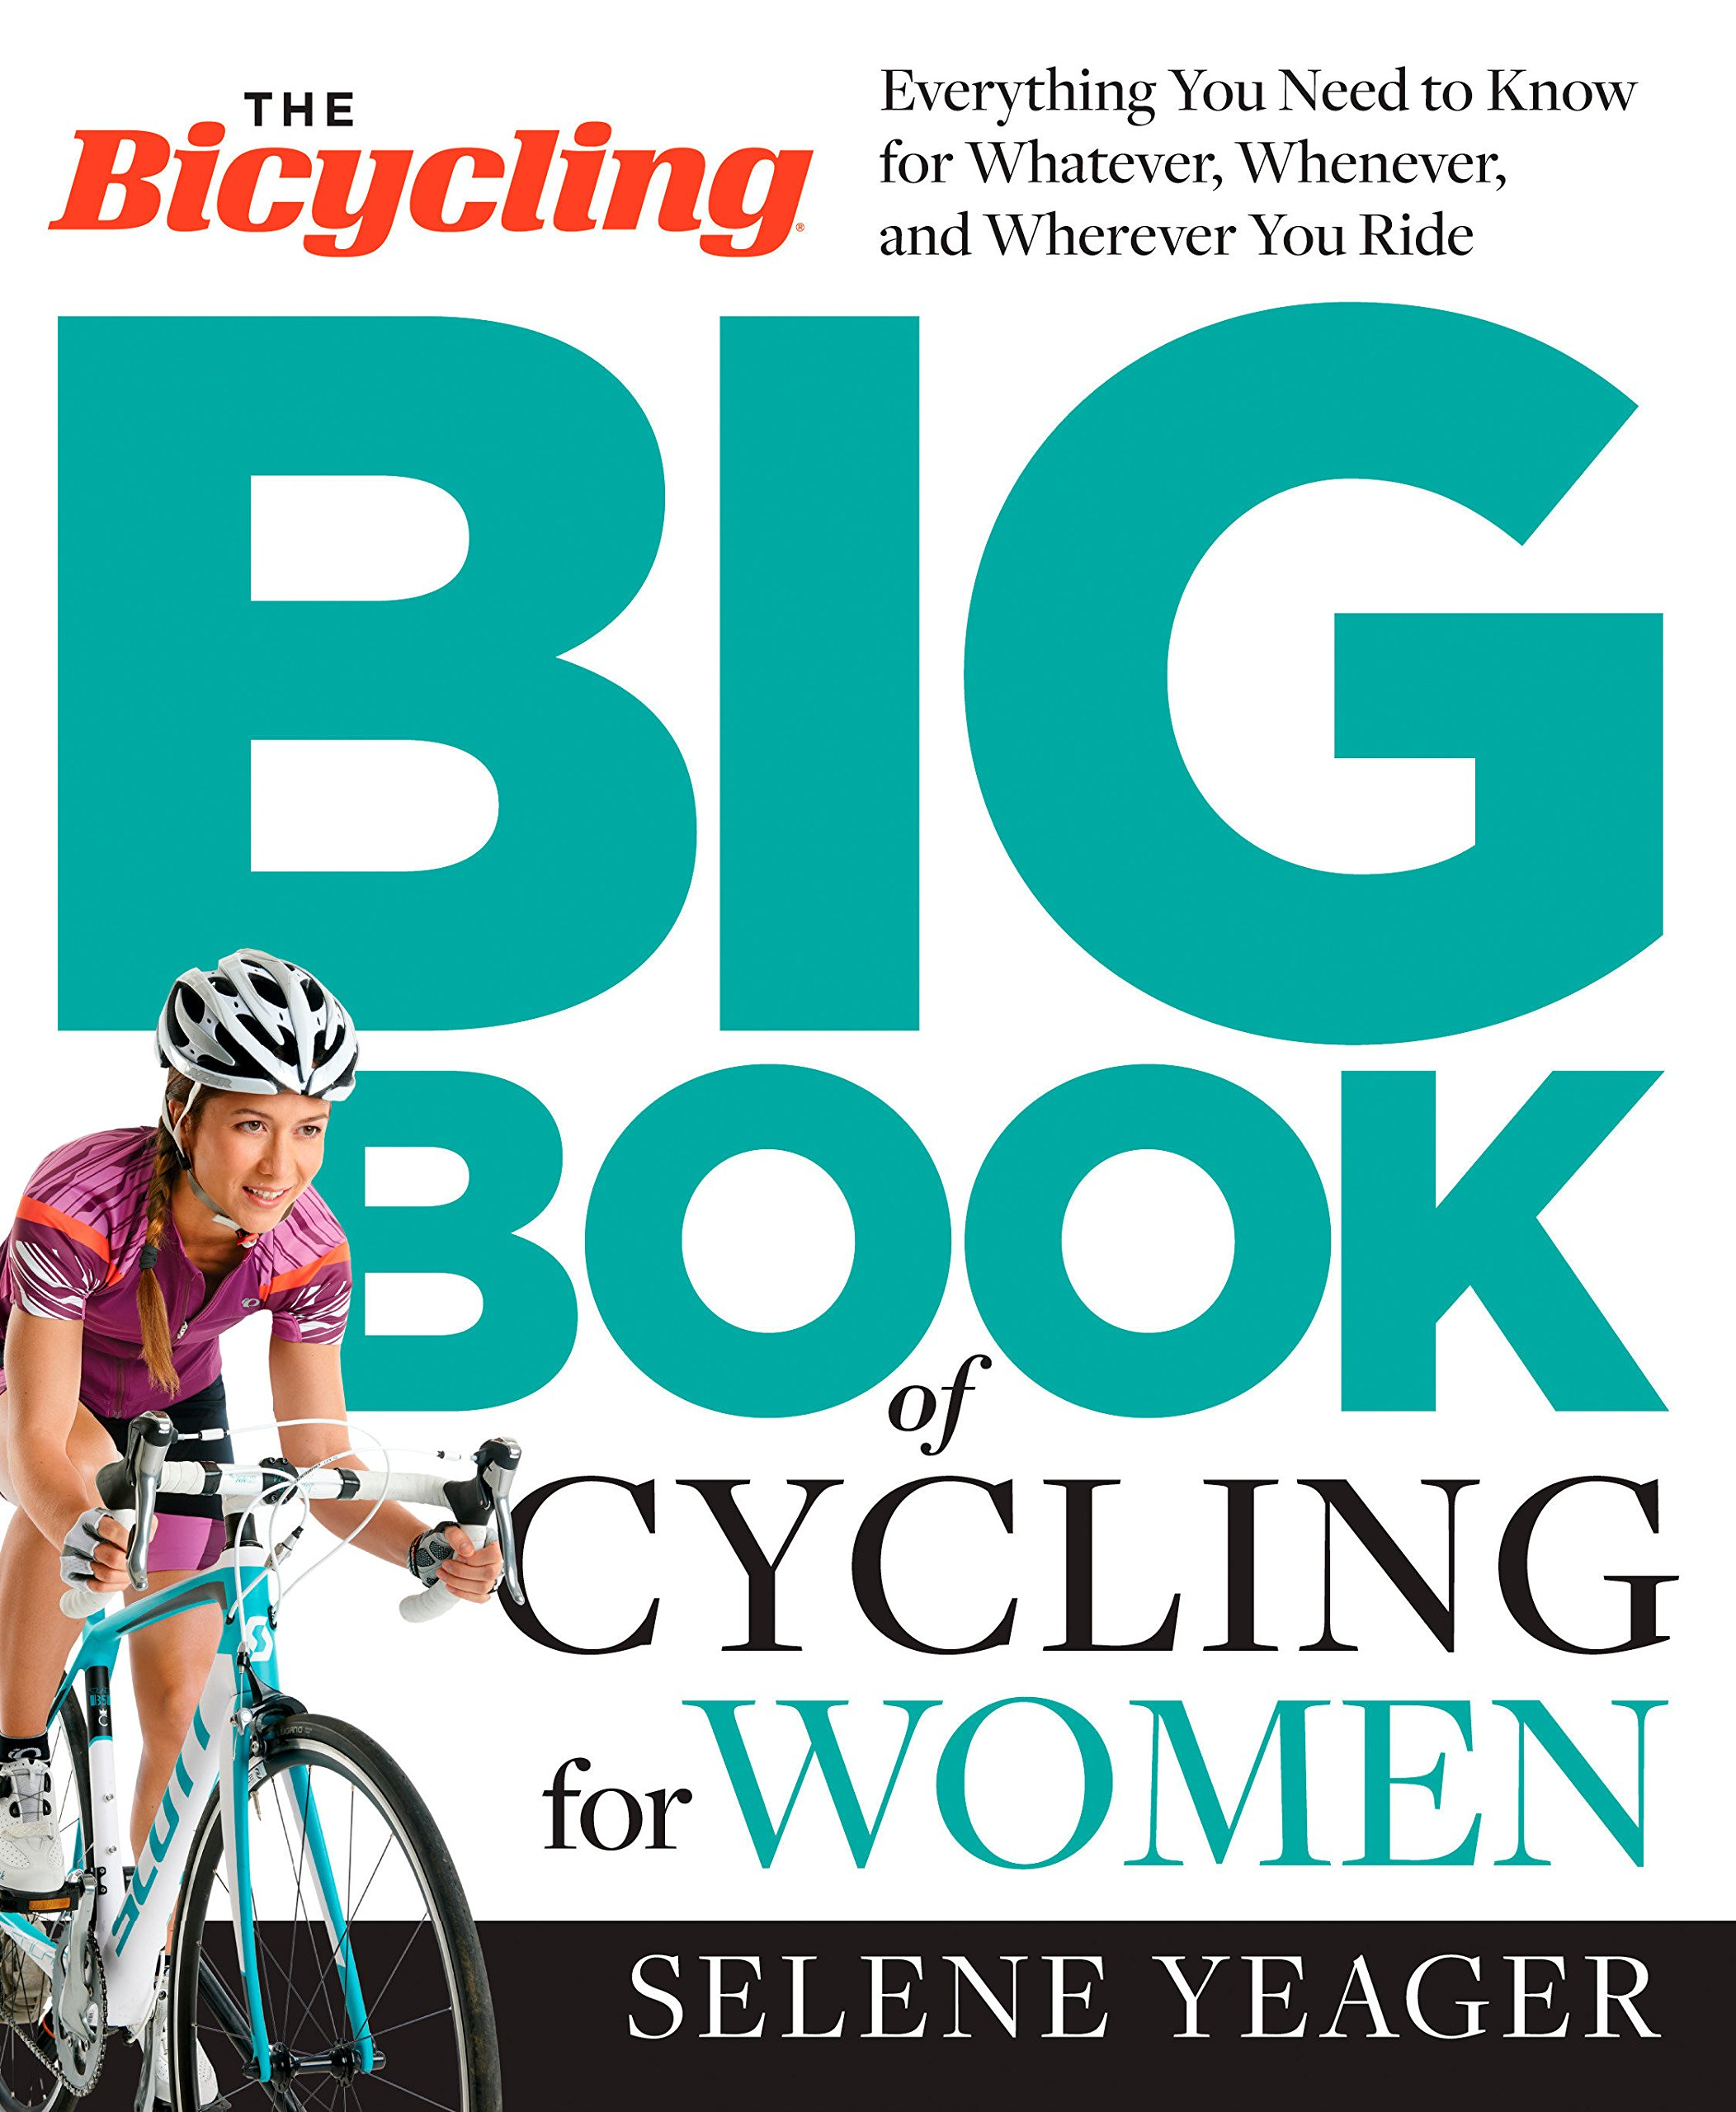 the bicycling big book of cycling for women everything you need to know for whatever whenever and wherever you ride